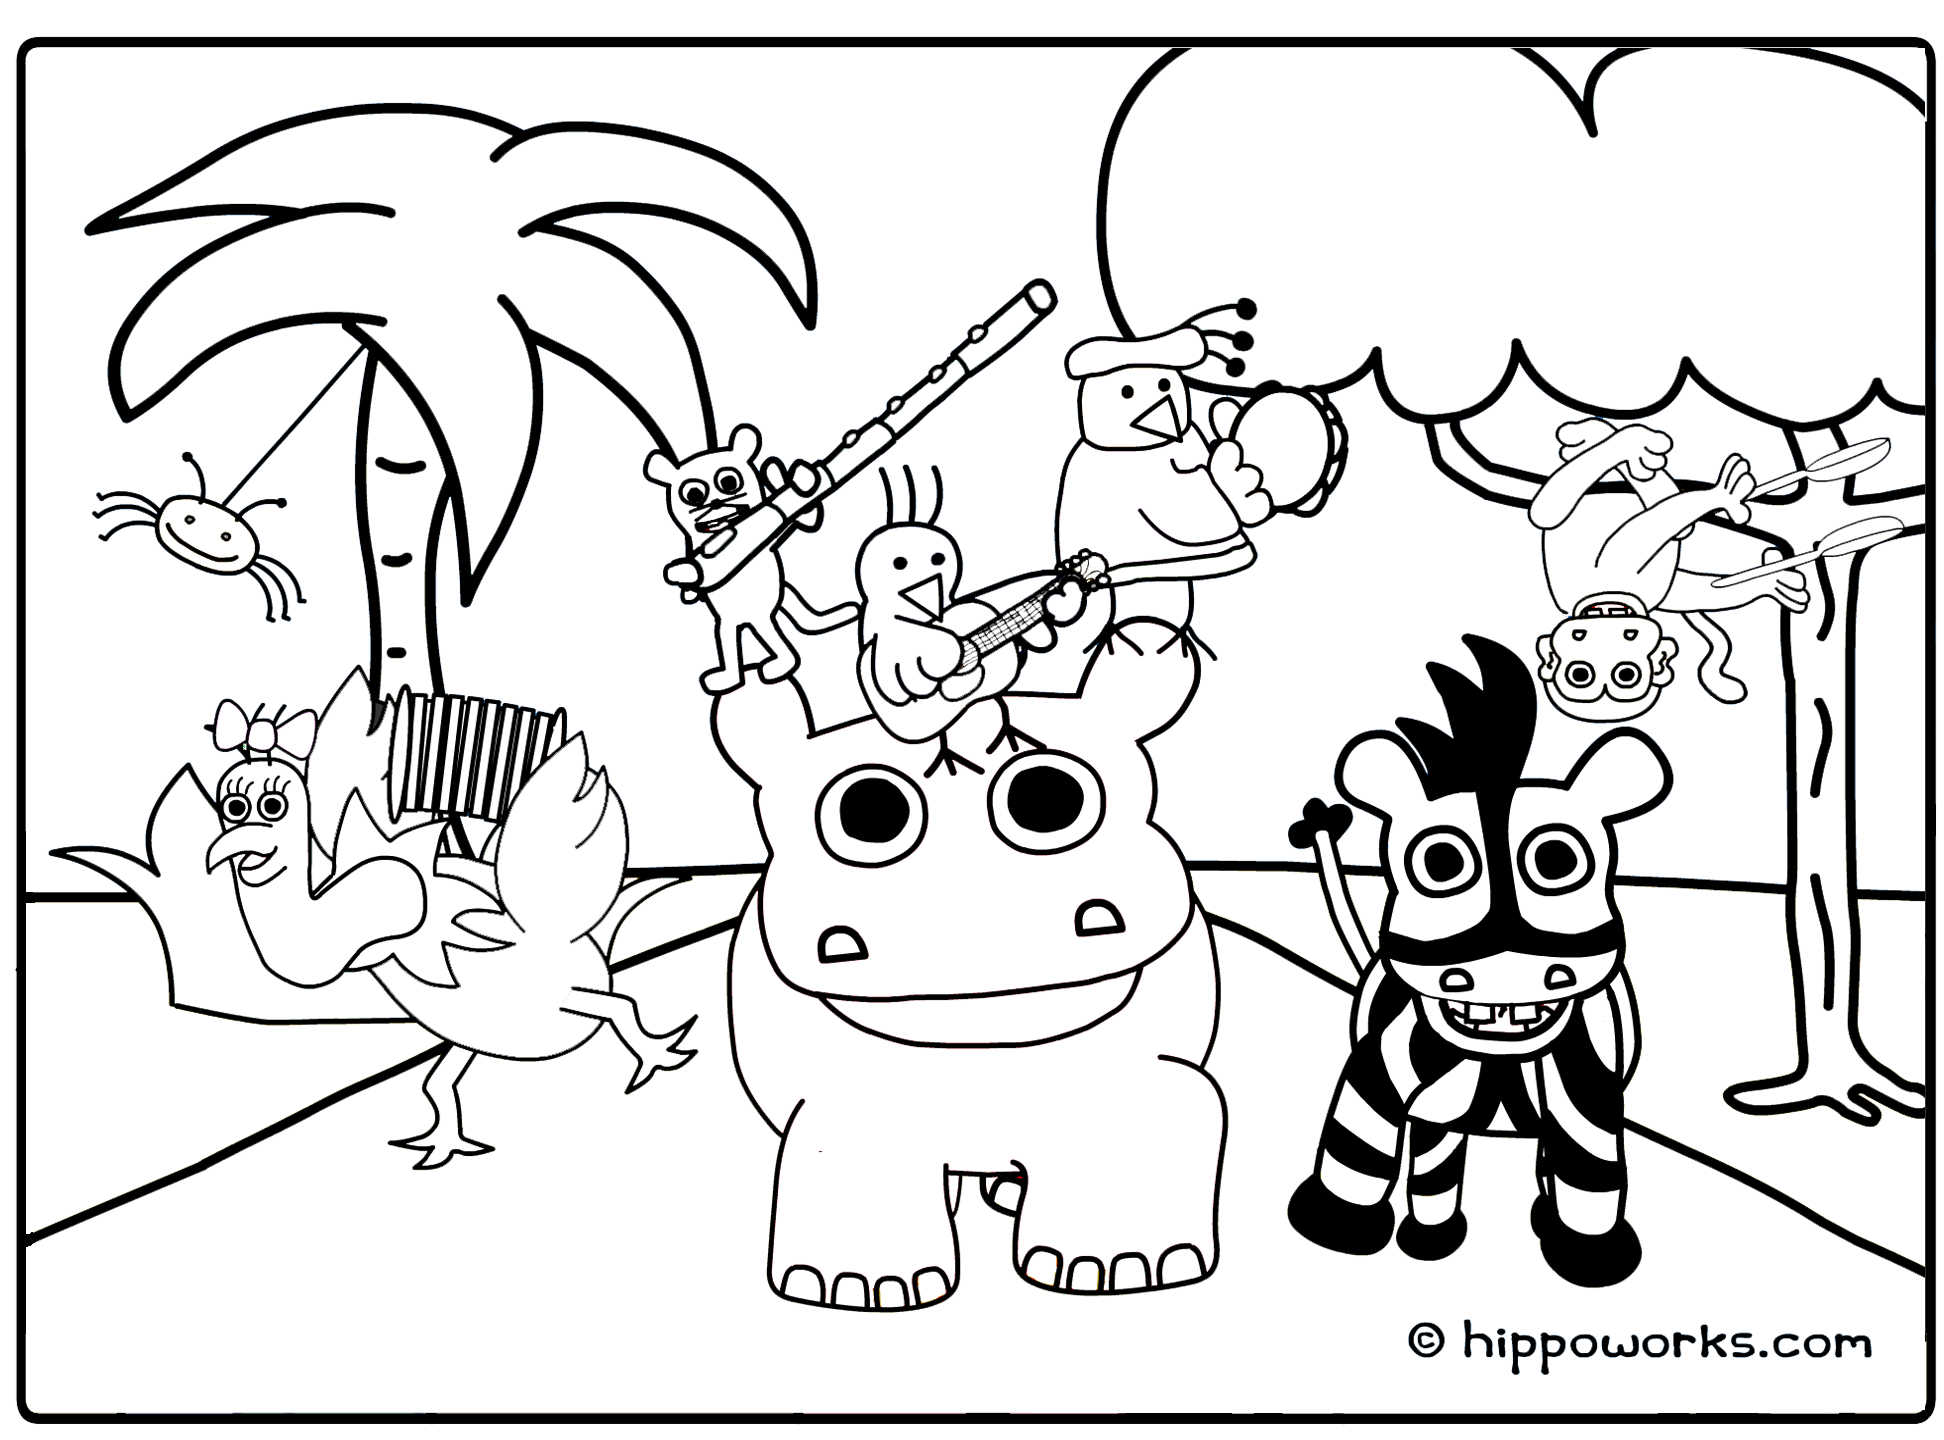 This is a picture of Fan Printable Animal Coloring Pages